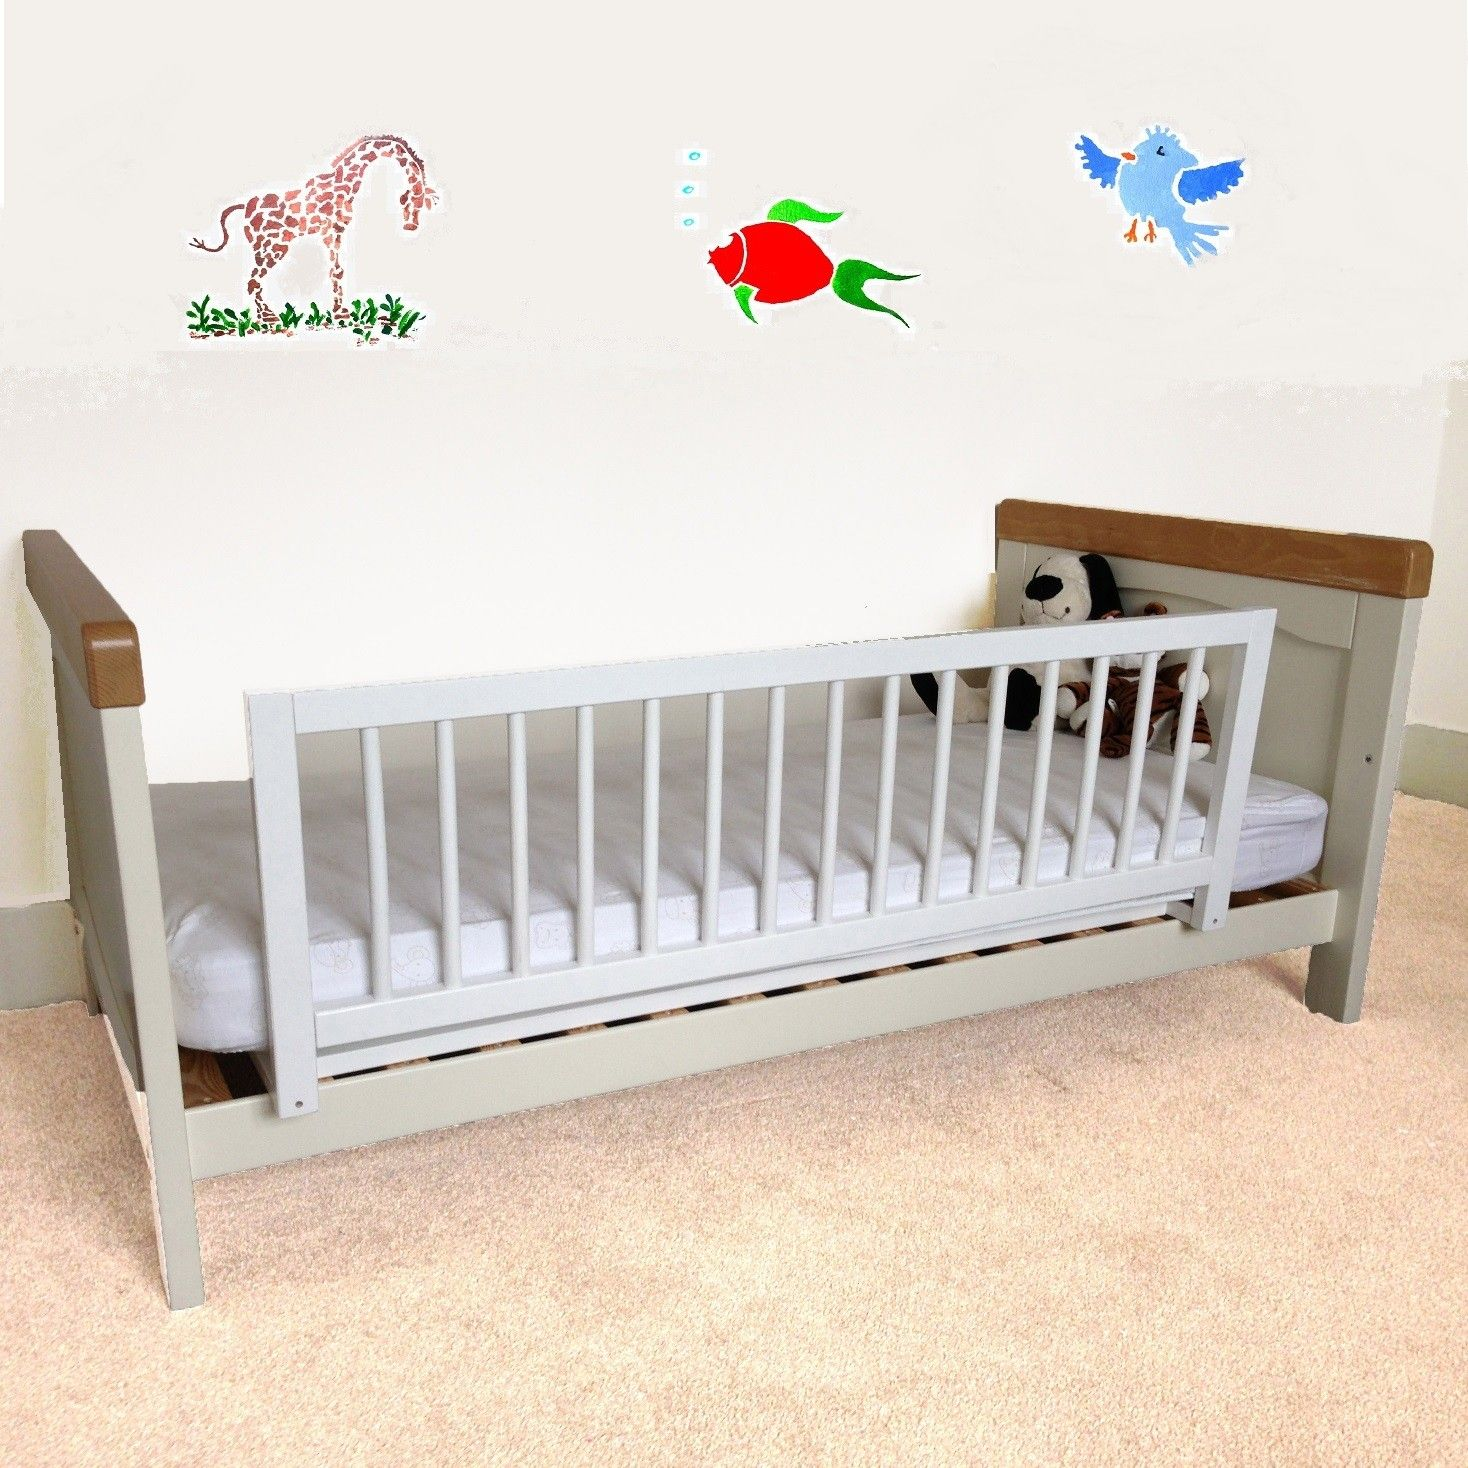 Safetots Wooden Bed Rail White Rails